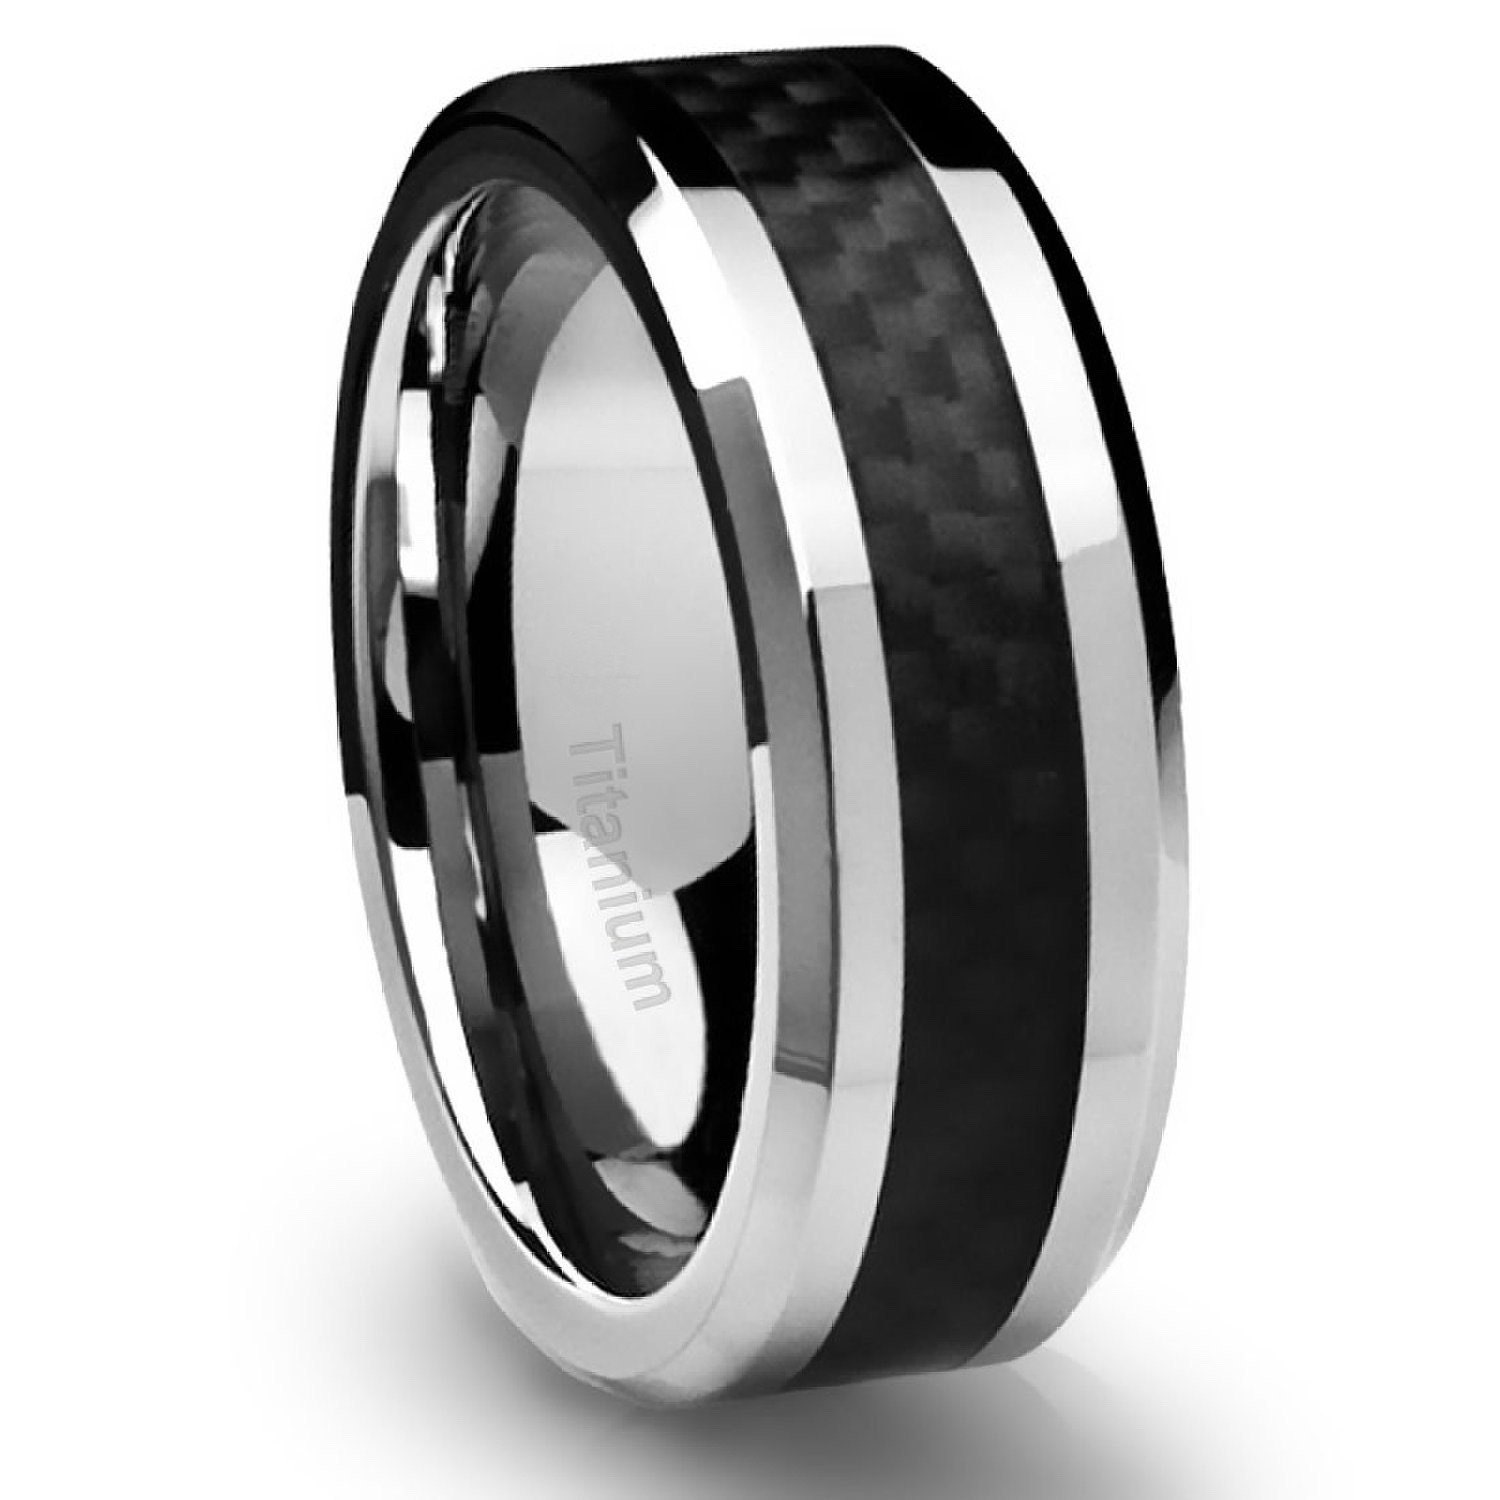 mens titanium ring wedding band black carbon fiber 8mm